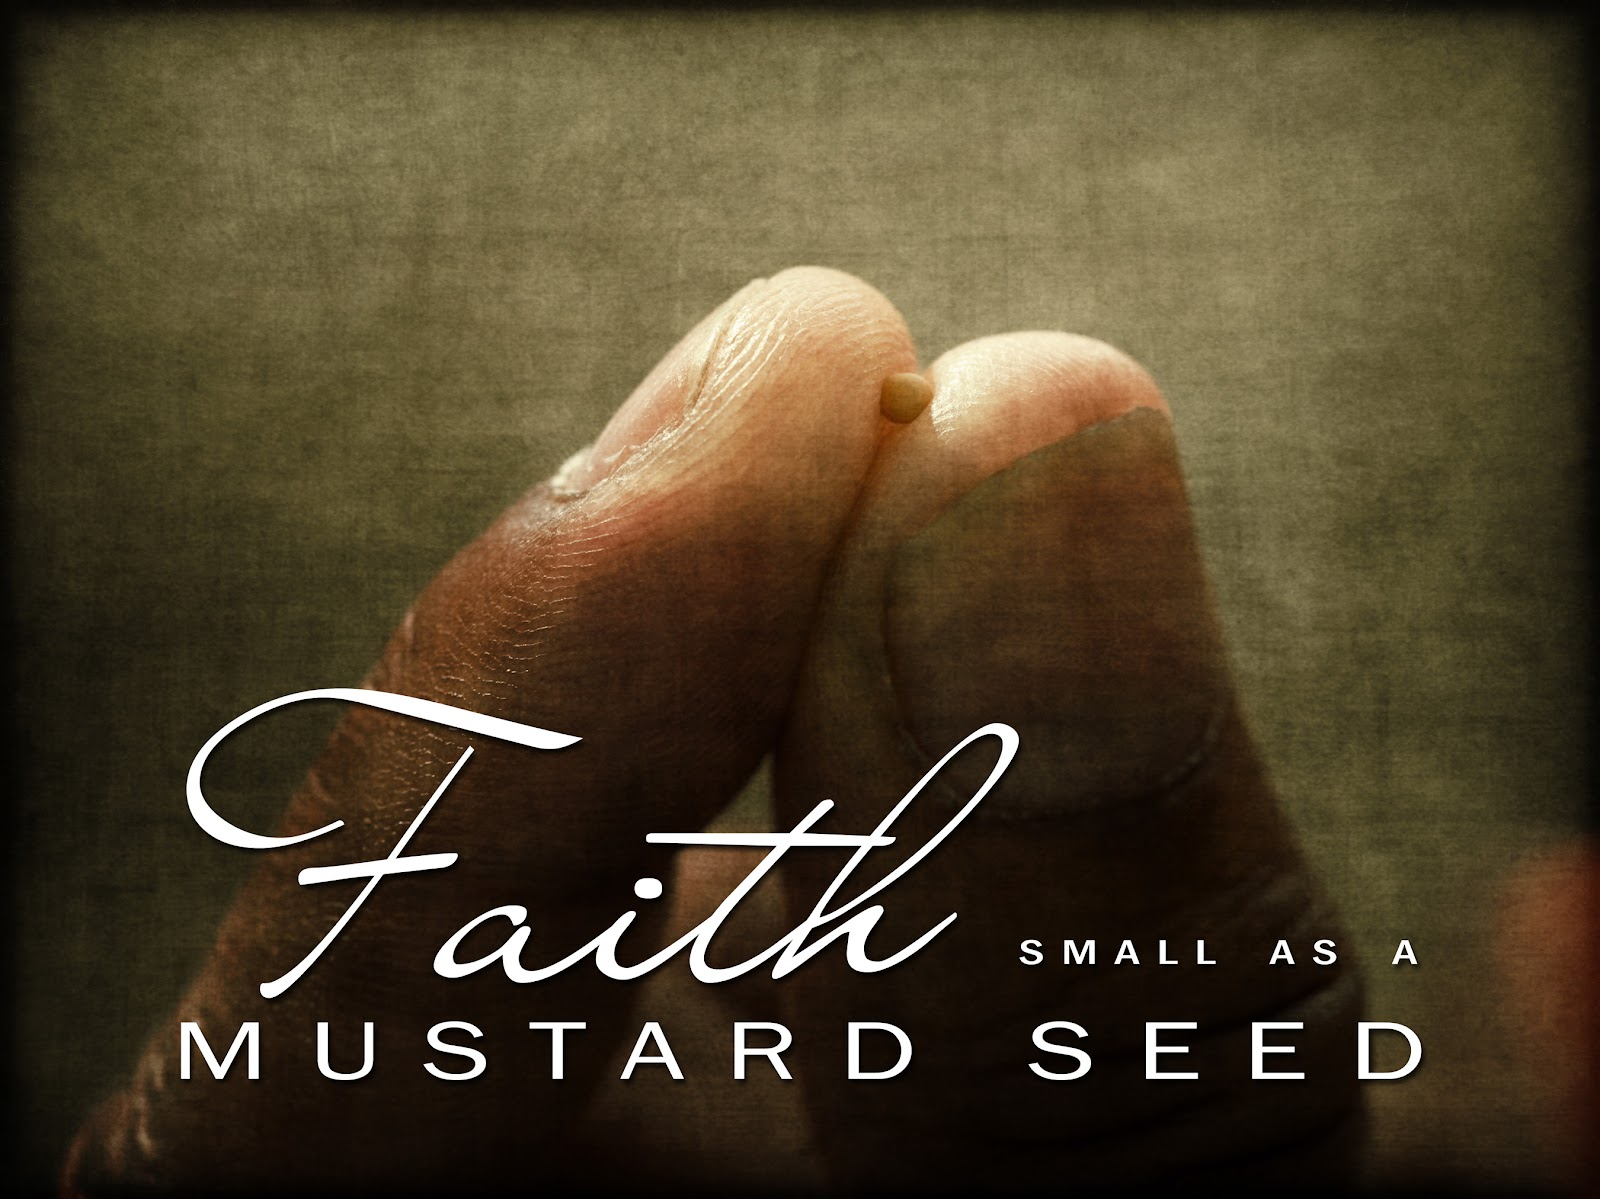 A mustard seed held between two finger tips.